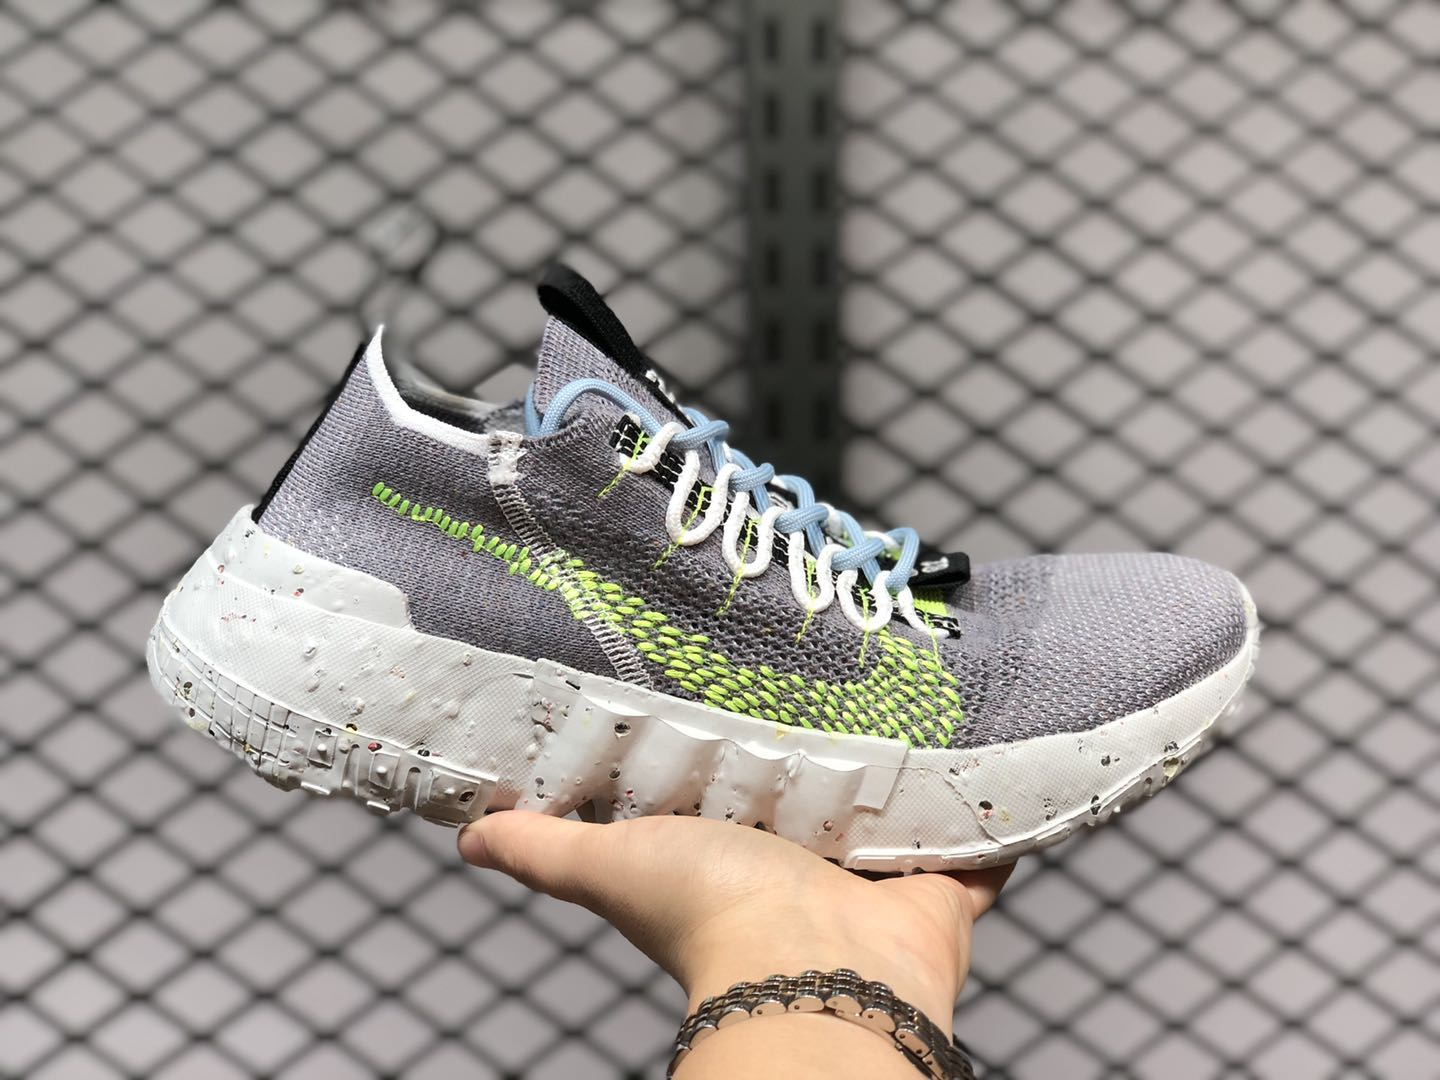 Nike Space Hippie 01 Grey/Volt Running Shoes CQ3986-002